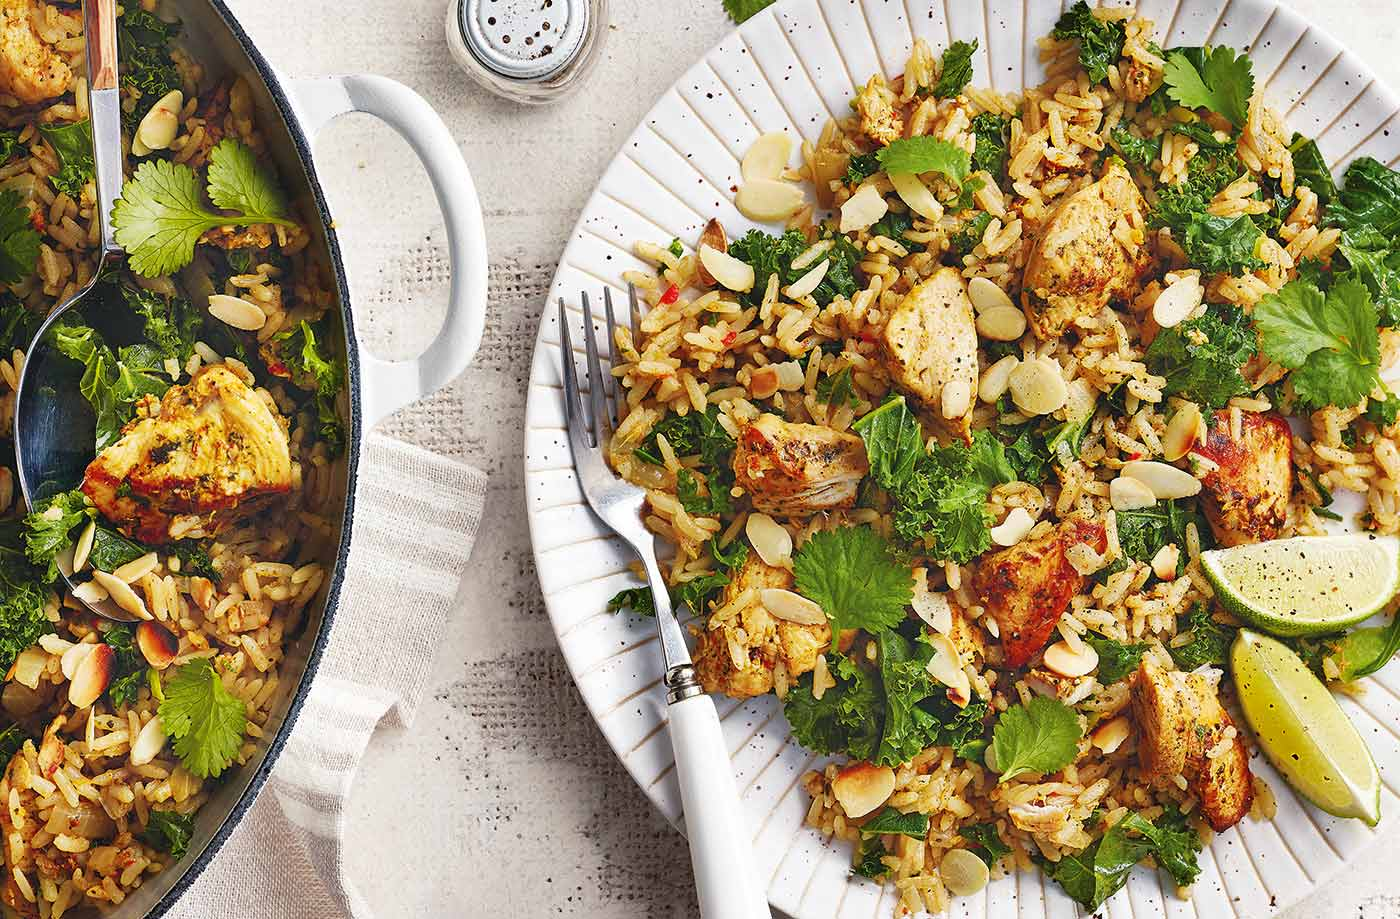 Coriander chicken pilaf recipe